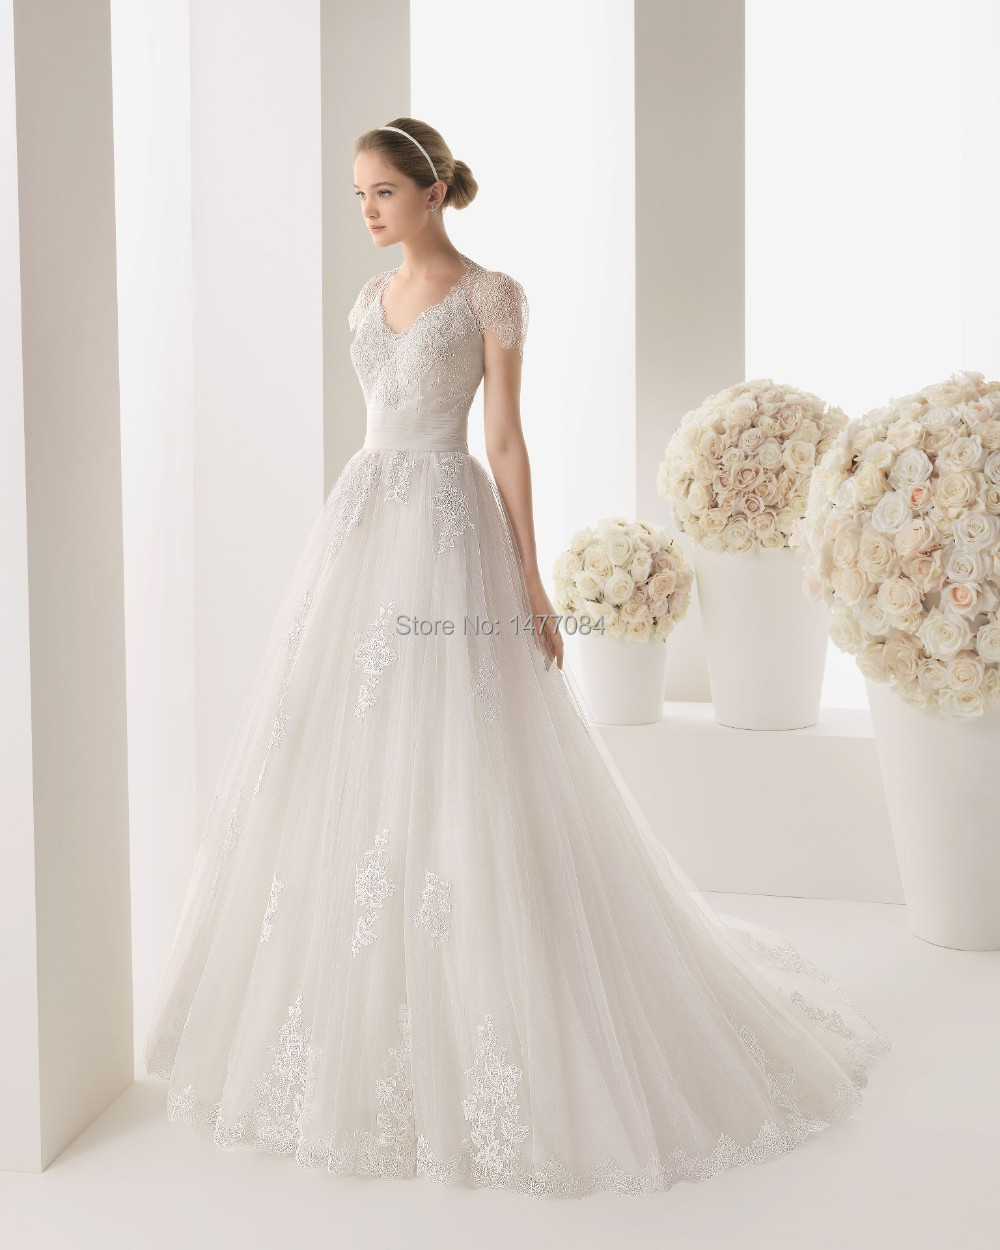 Свадебное платье 2015 Vestido Noiva Wedding Dresses 2014 New Style свадебное платье wedding dress 2015 vestido noiva wedding dress 2014